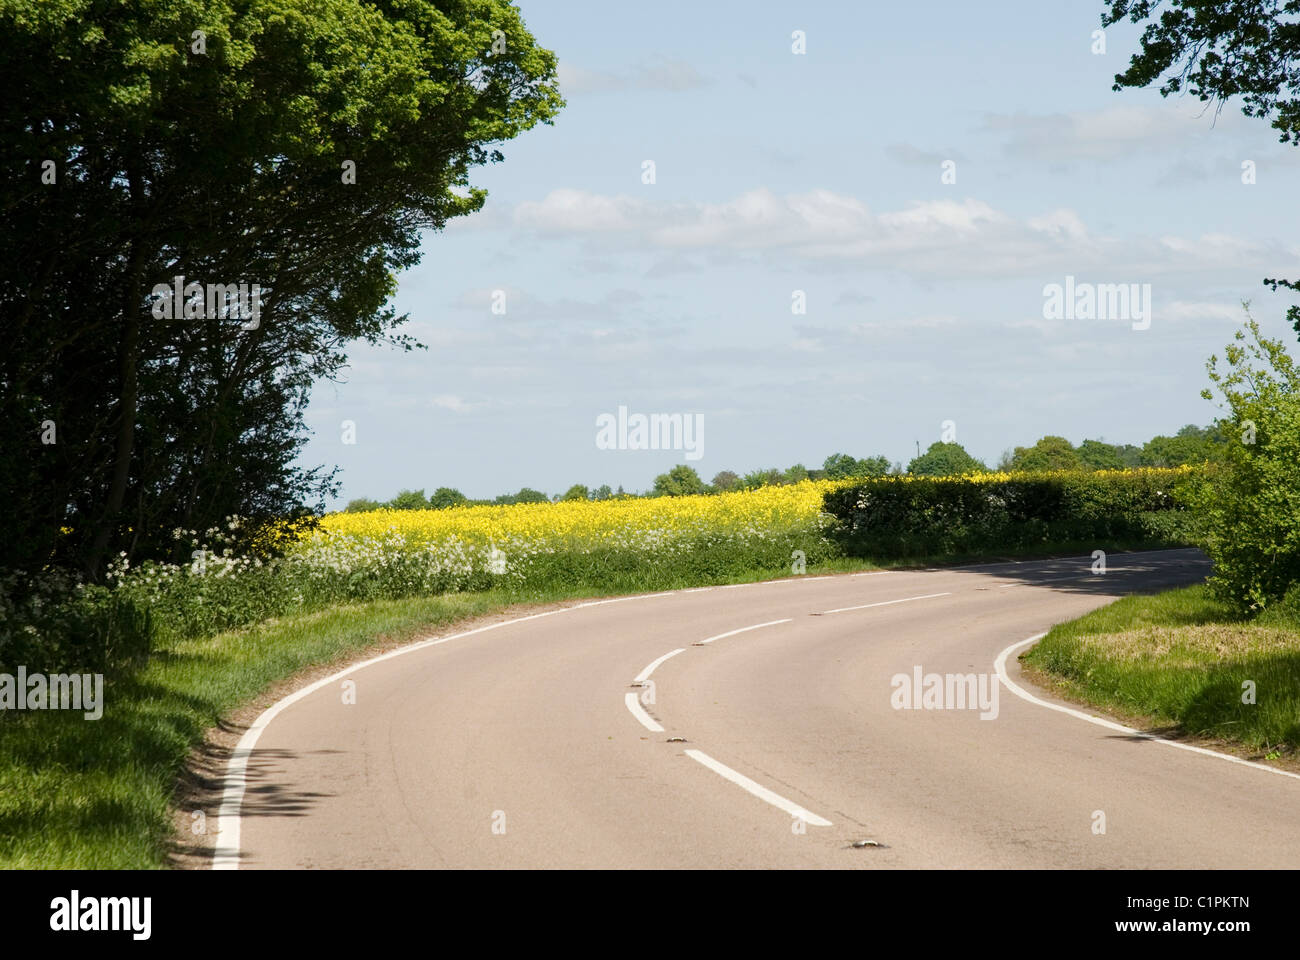 England, Suffolk, Lavenham, curving country road - Stock Image